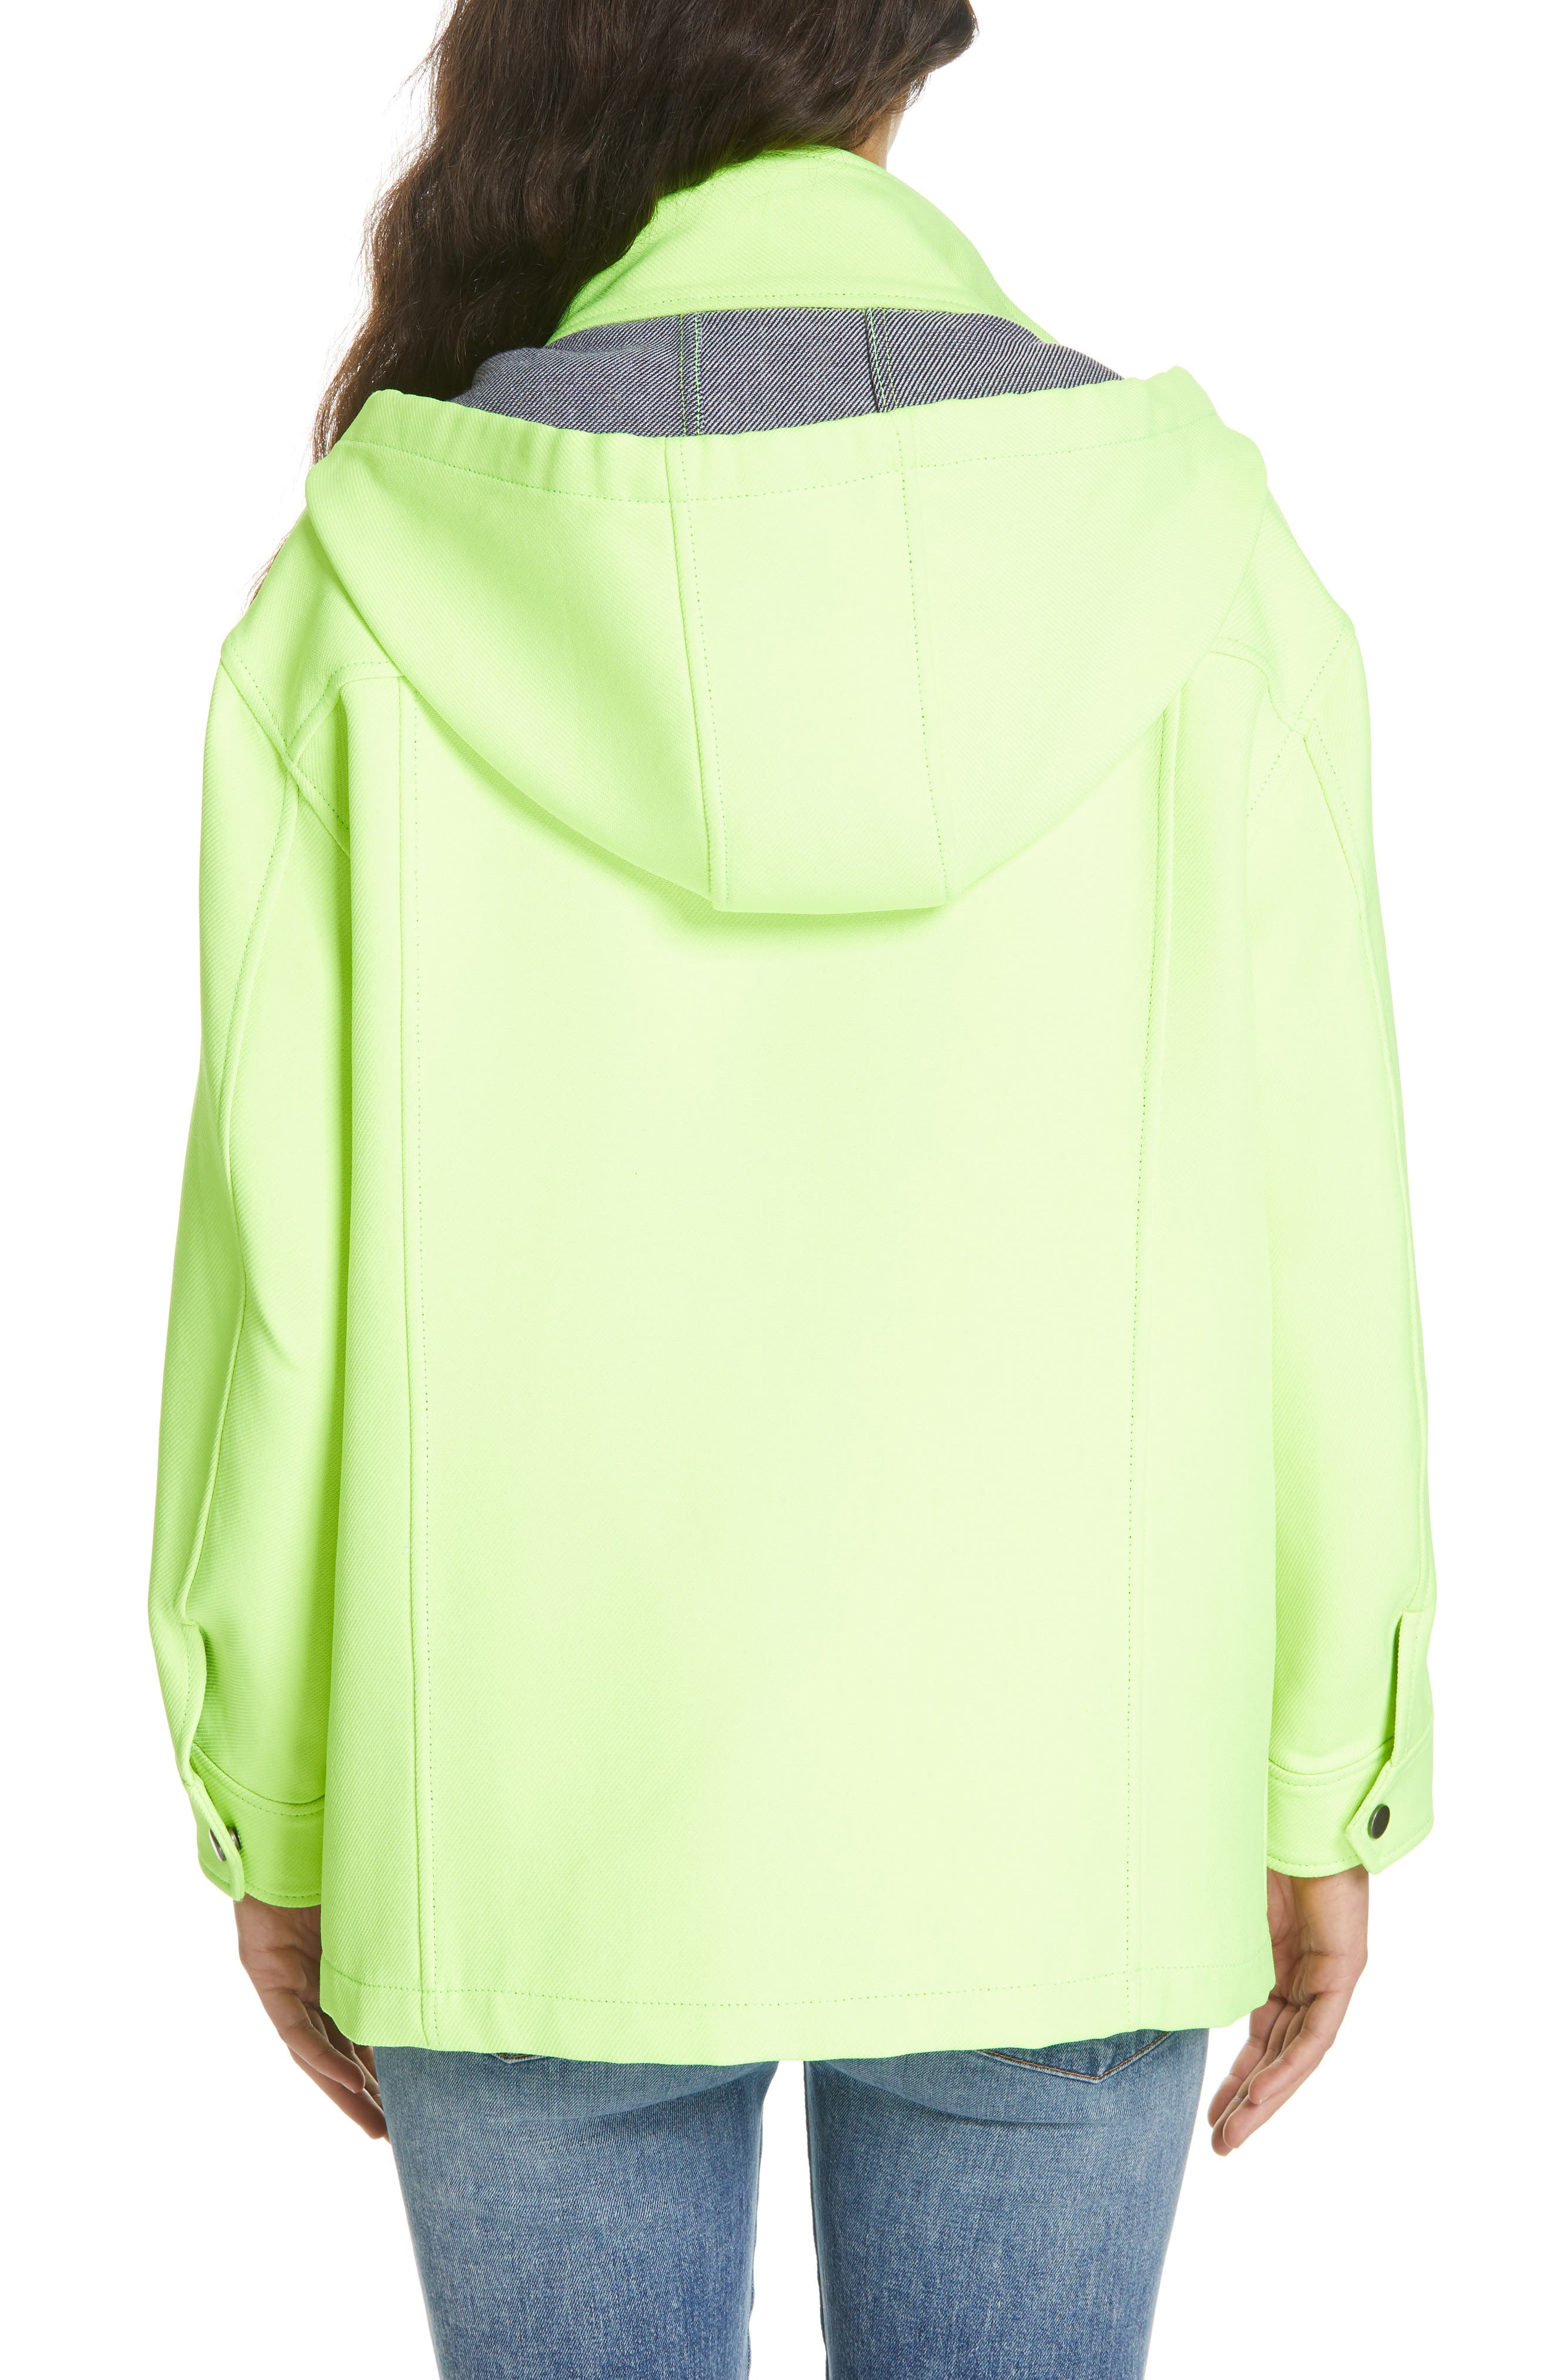 ALICE + OLIVIA,                             Russo Hooded Jacket,                             Alternate thumbnail 2, color,                             NEON YELLOW